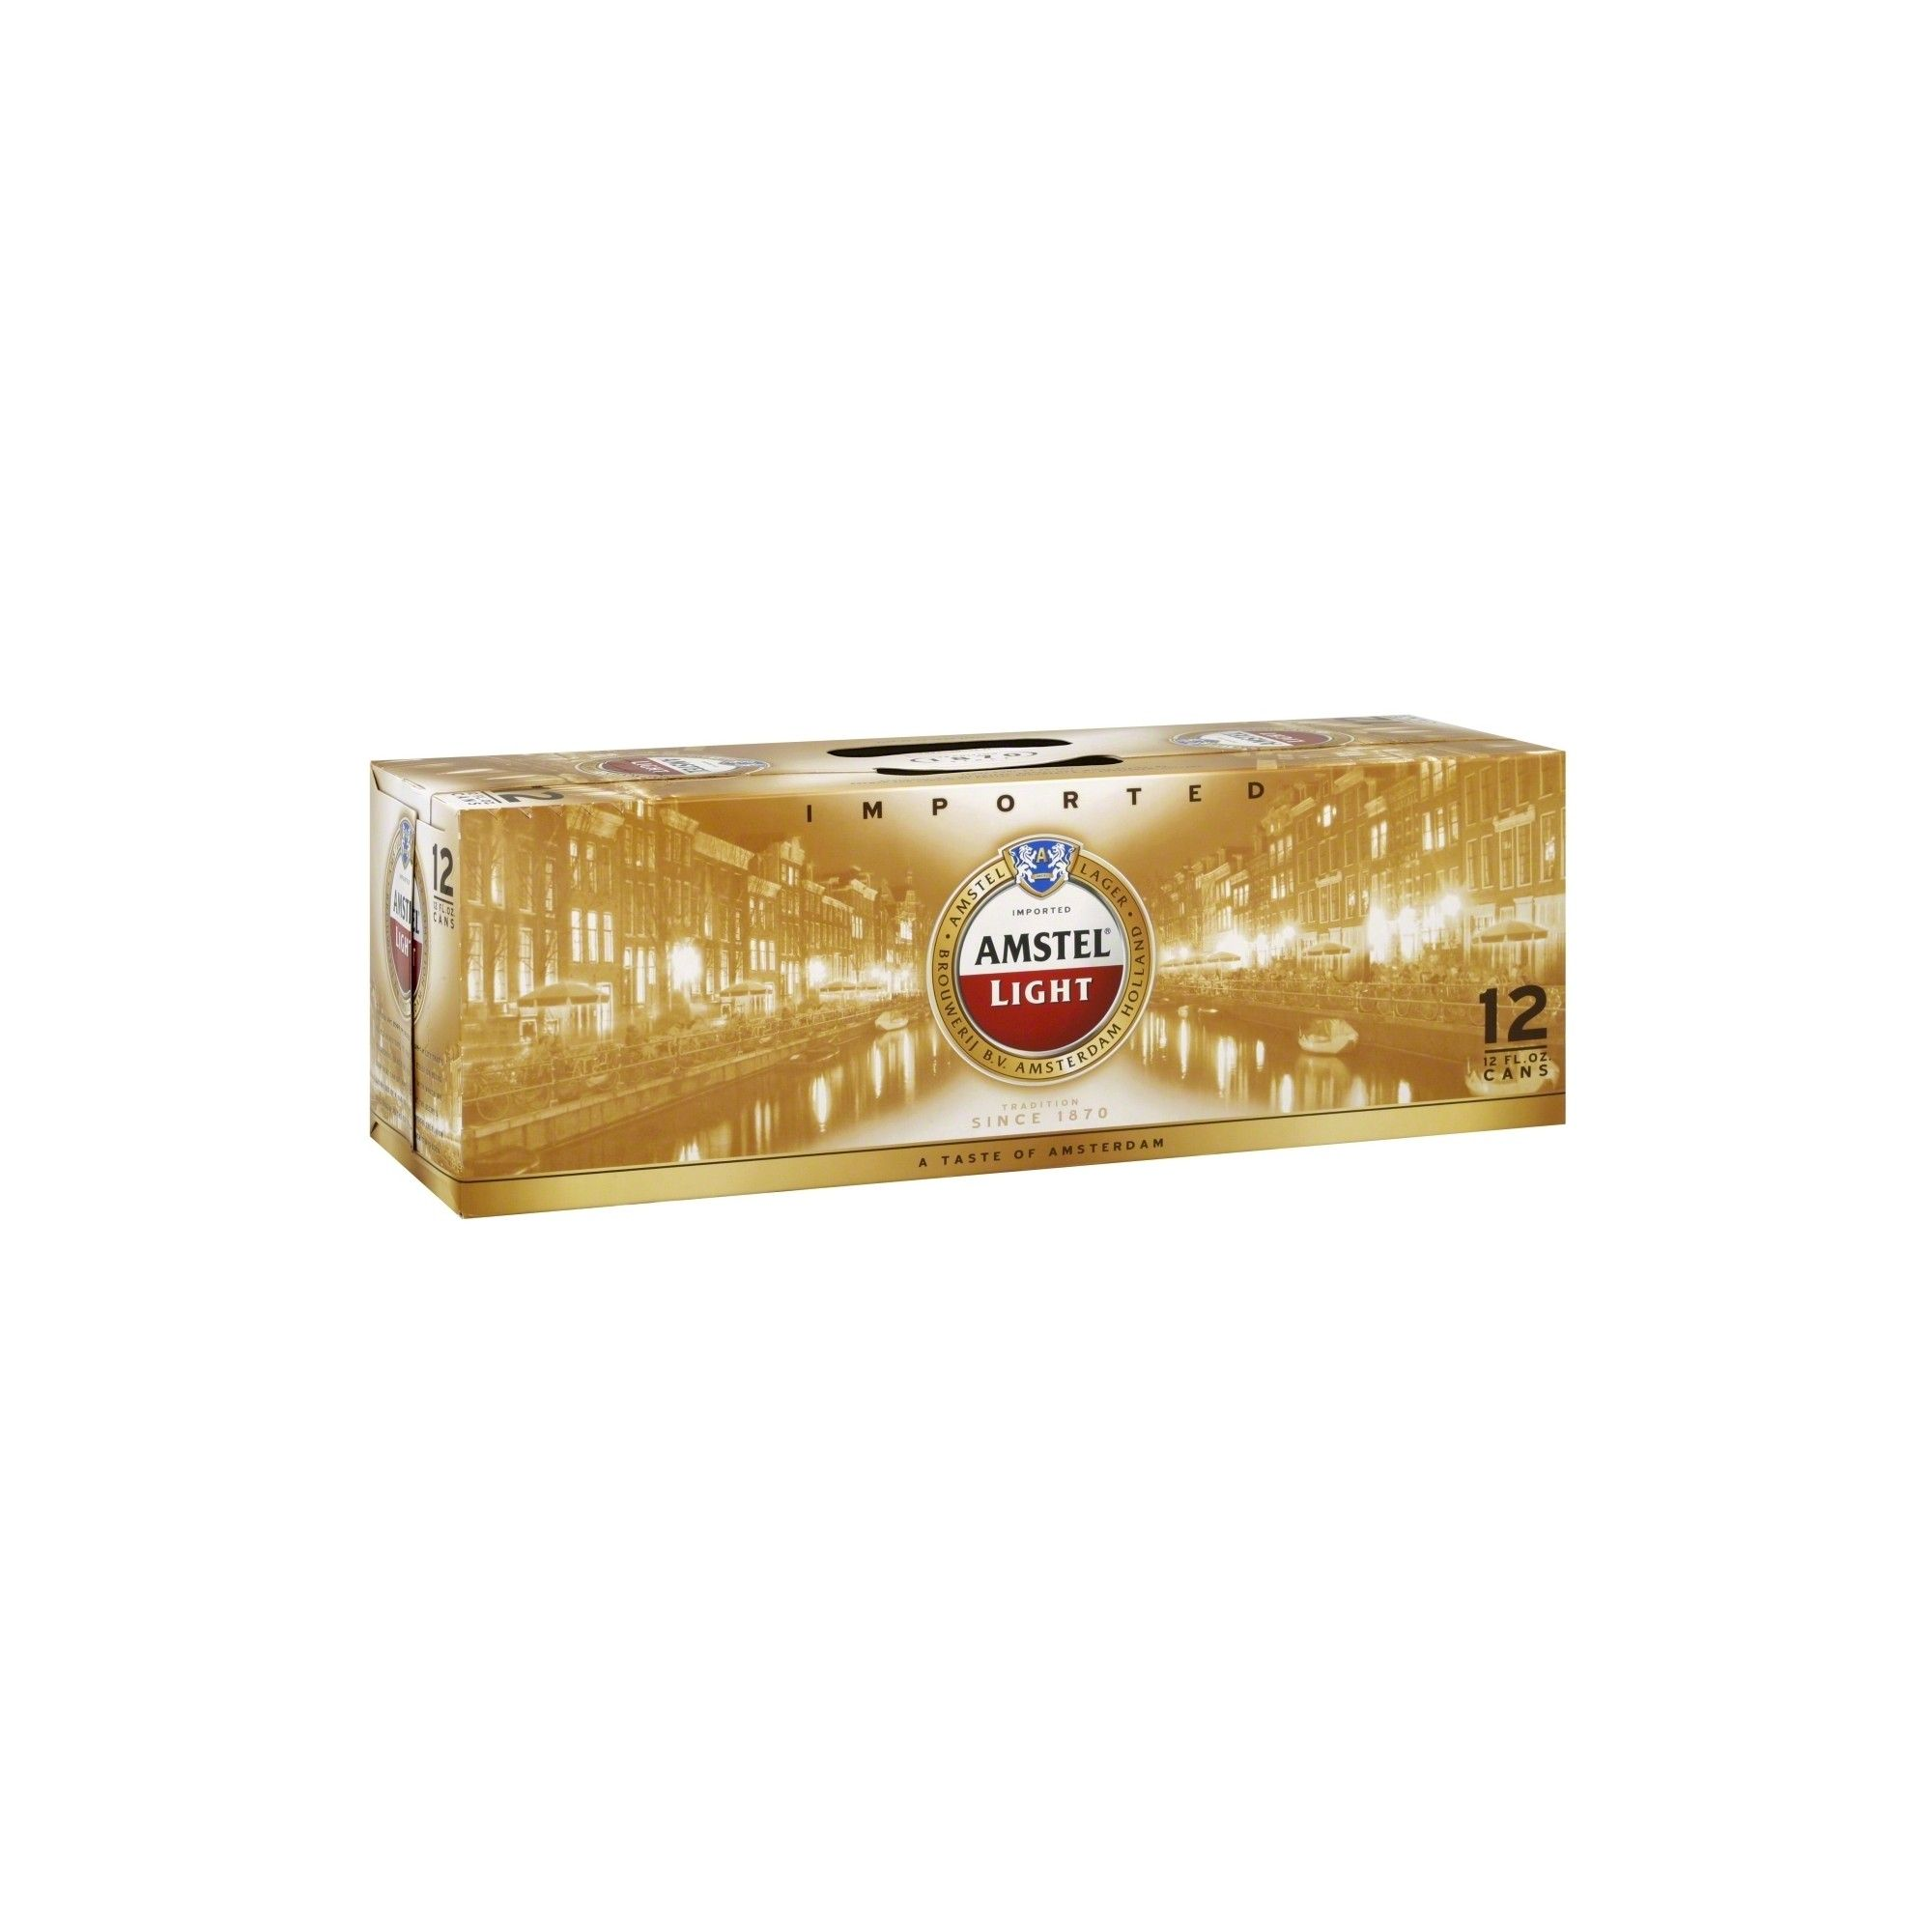 Amstel Light Beer 12pk 12 Fl Oz Cans Light Beer Beer Canning